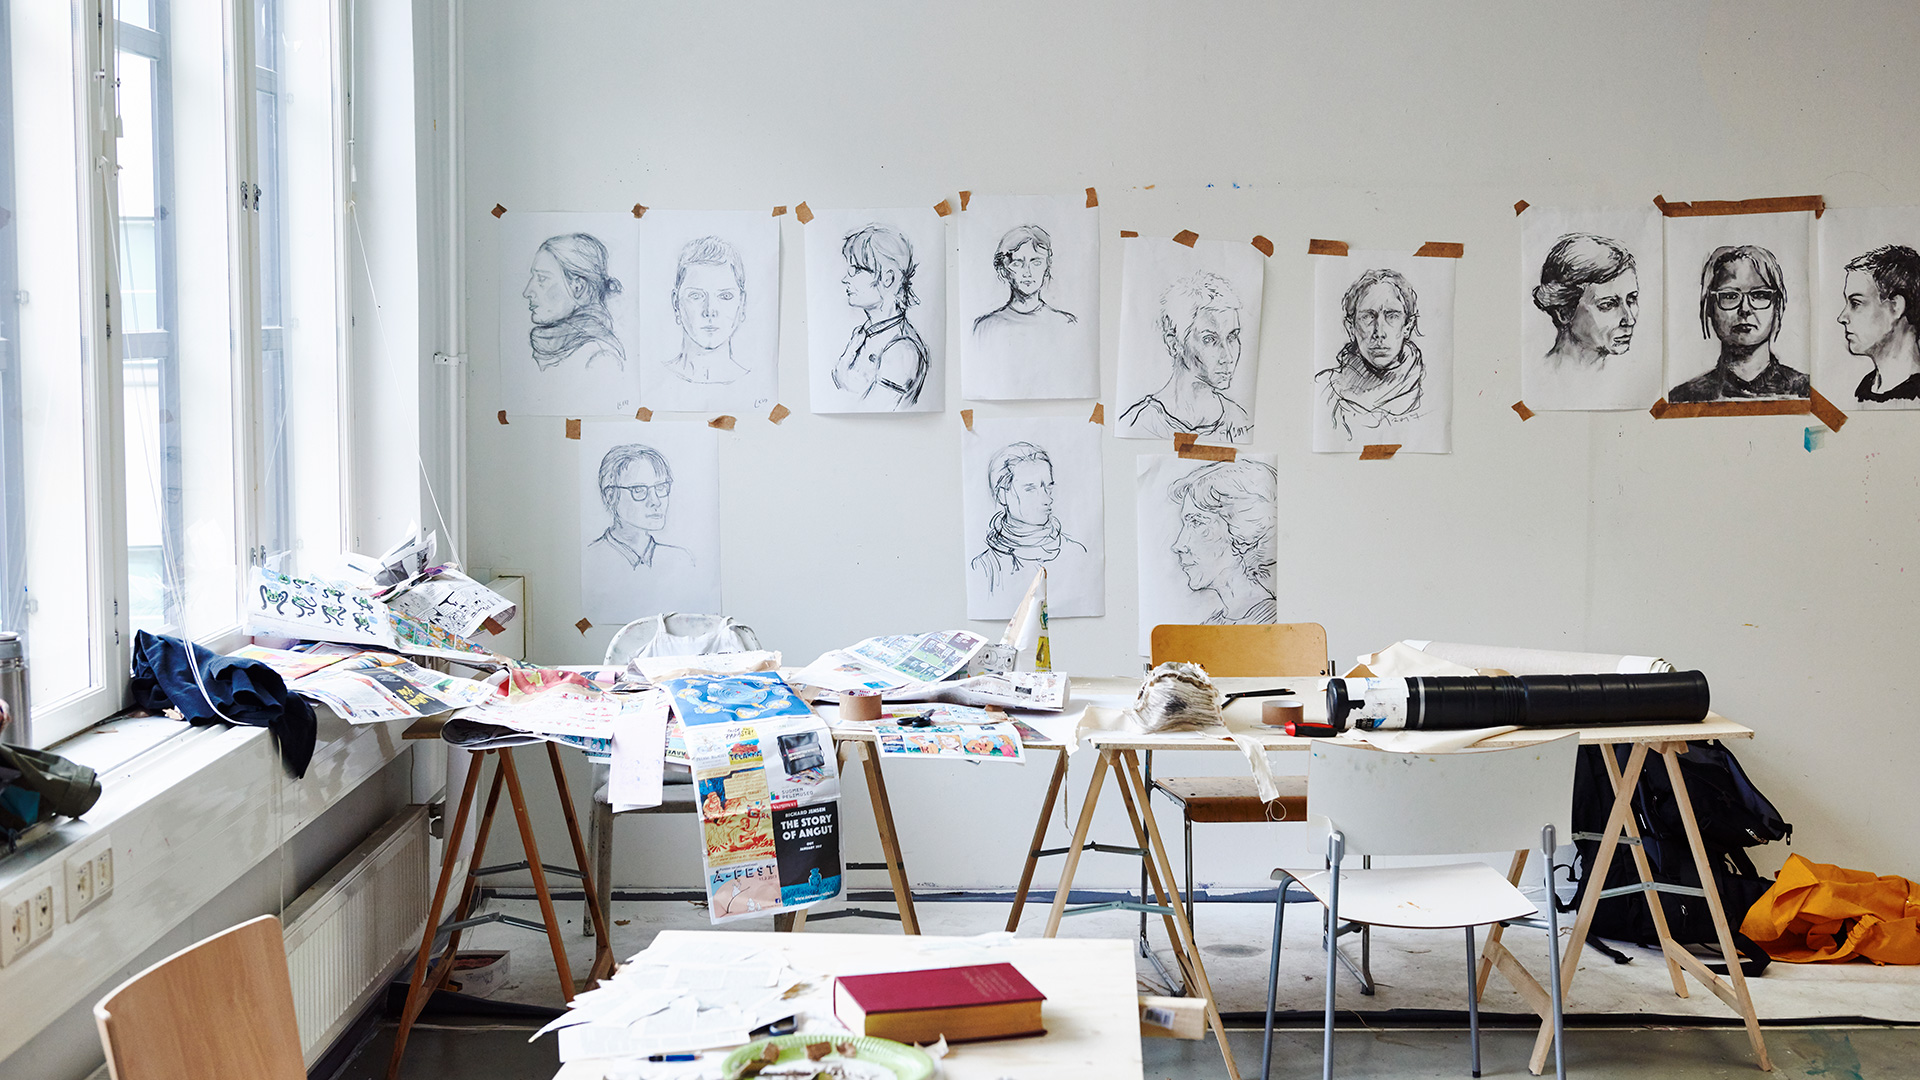 Drawings on a wall in a studio space